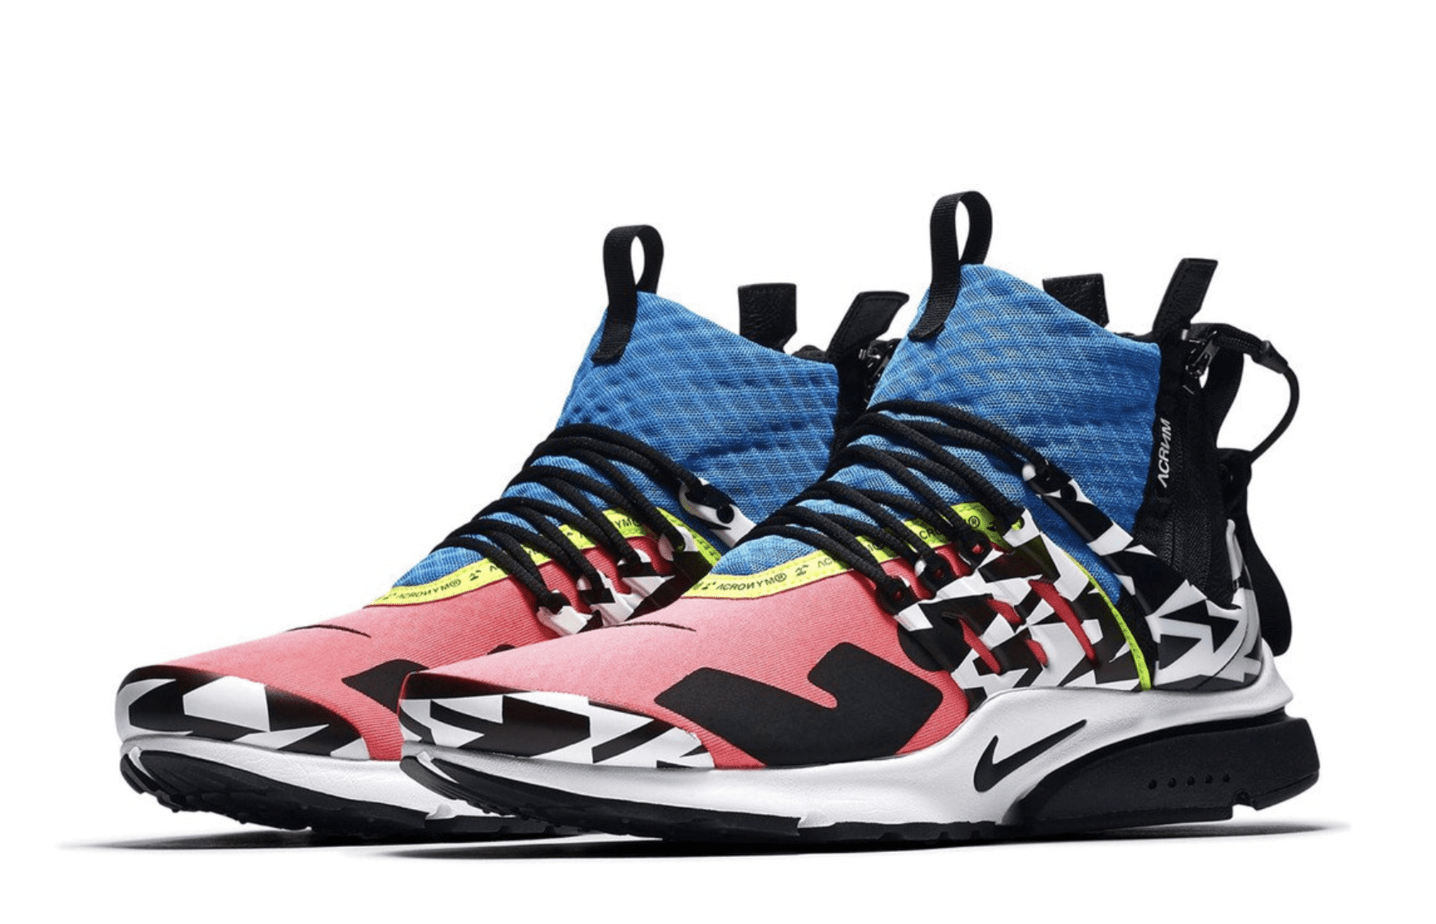 new arrival 67101 ad2c2 Acronym x Nike Air Presto Mid Release Date September 20th, 2018. Price  200. Color WhiteDynamic Yellow-Black Color Cool GreyBlack